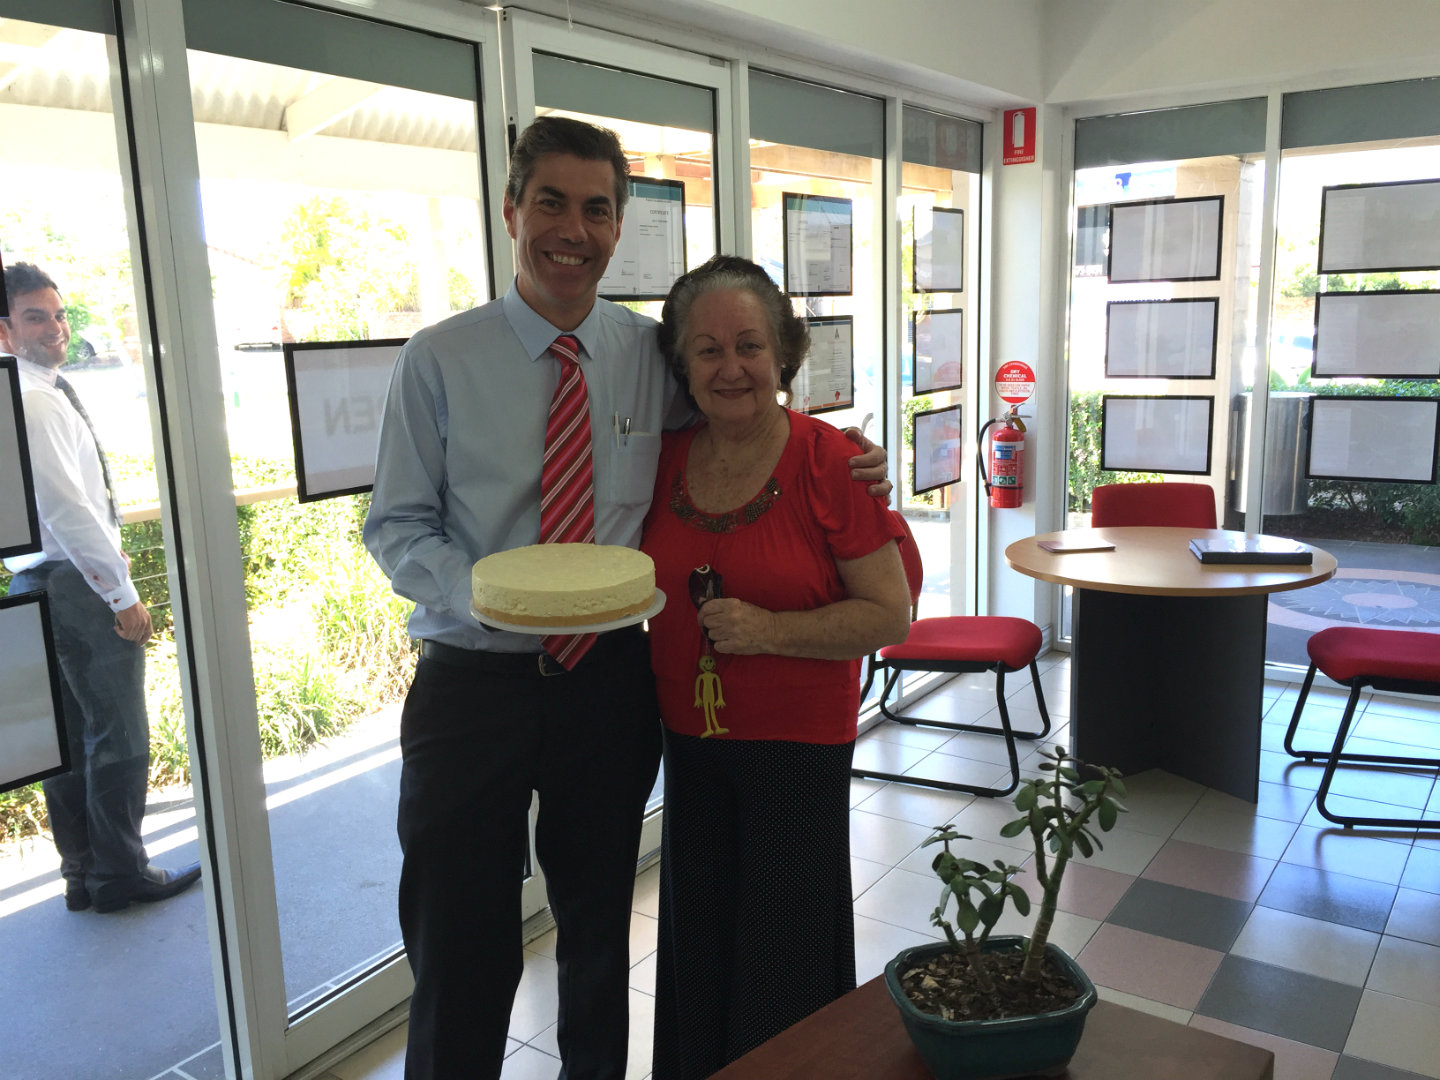 Cheesecake-Lady sold her property safely after choosing harts property